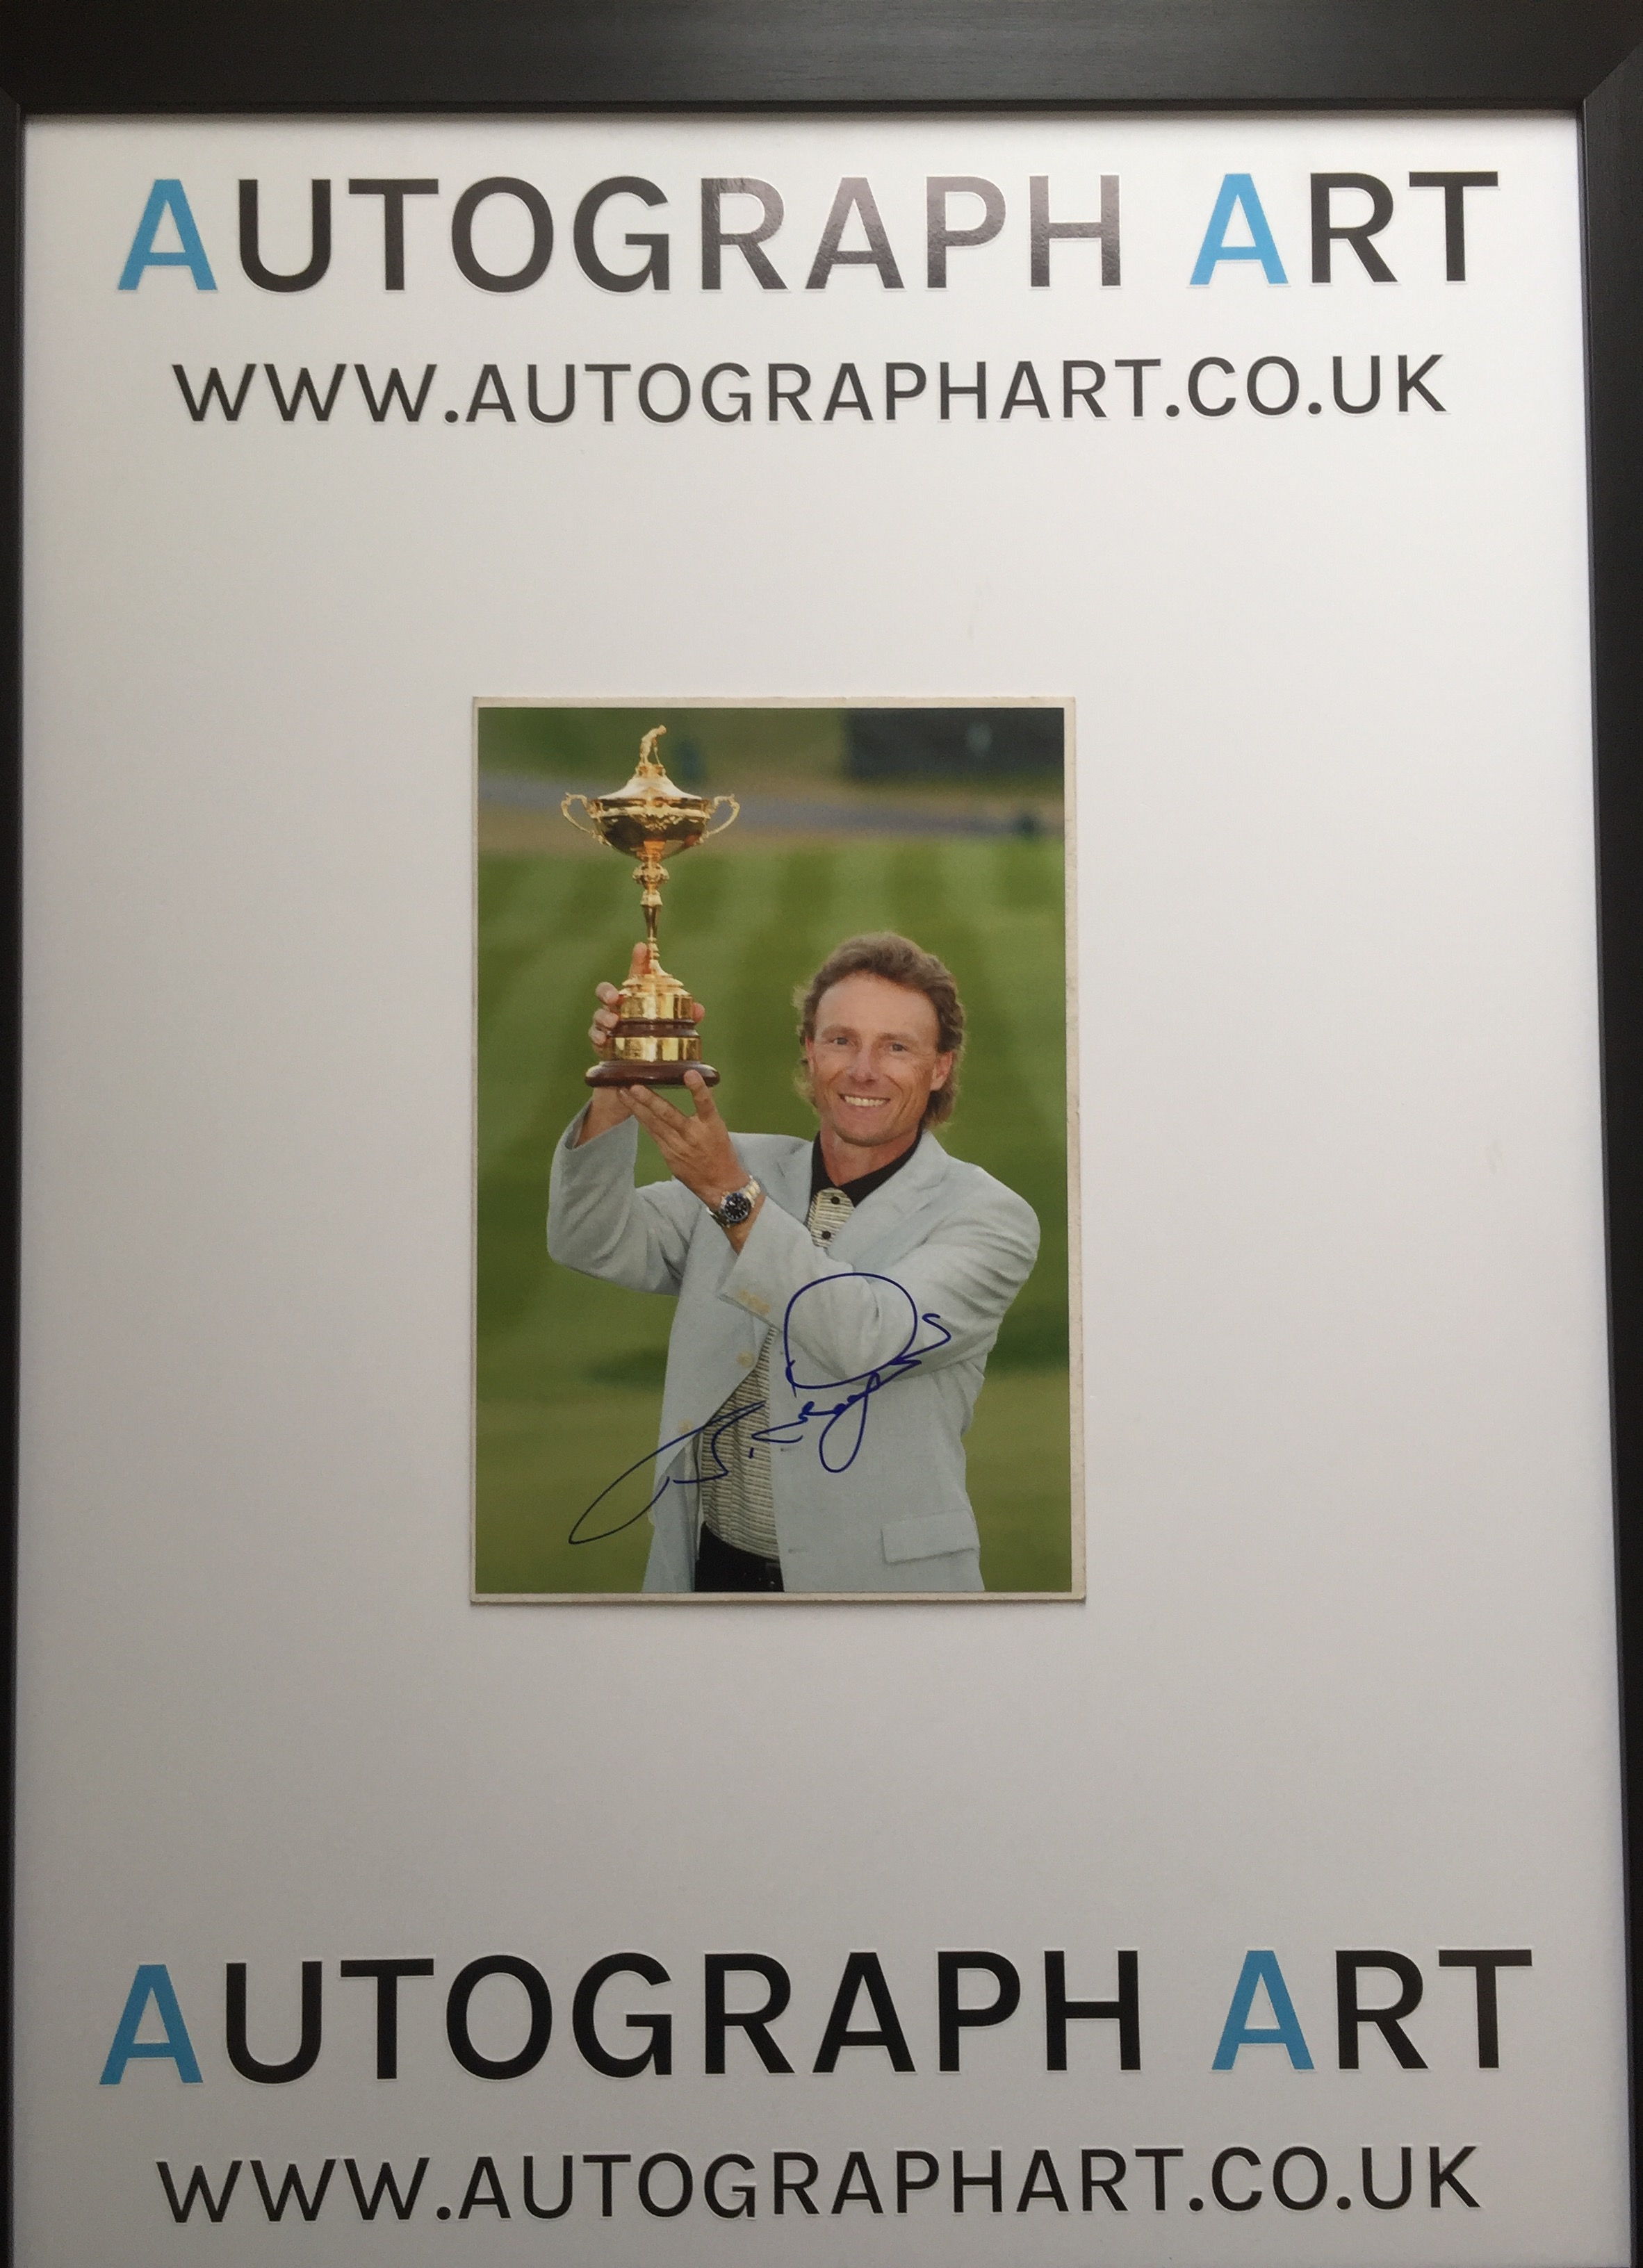 bernhard chair review high for adults langer signed photo 12 x 8 autographed memorabilia